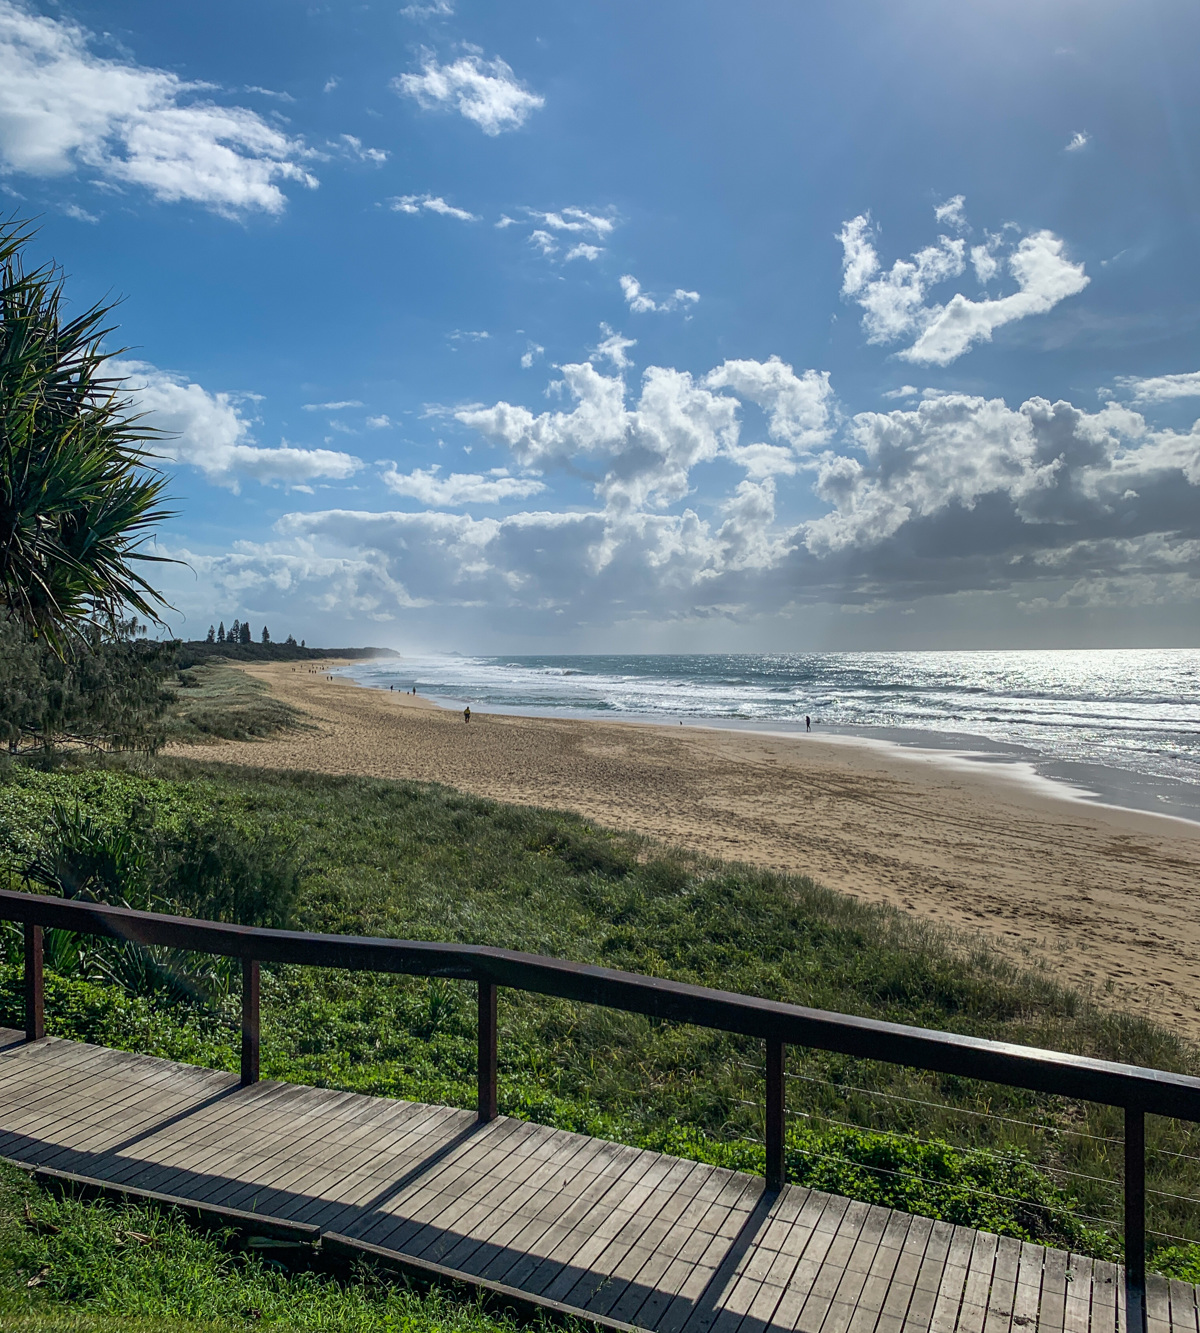 Trail Image for Coastal Pathway: Dicky Beach to Currimundi Lake